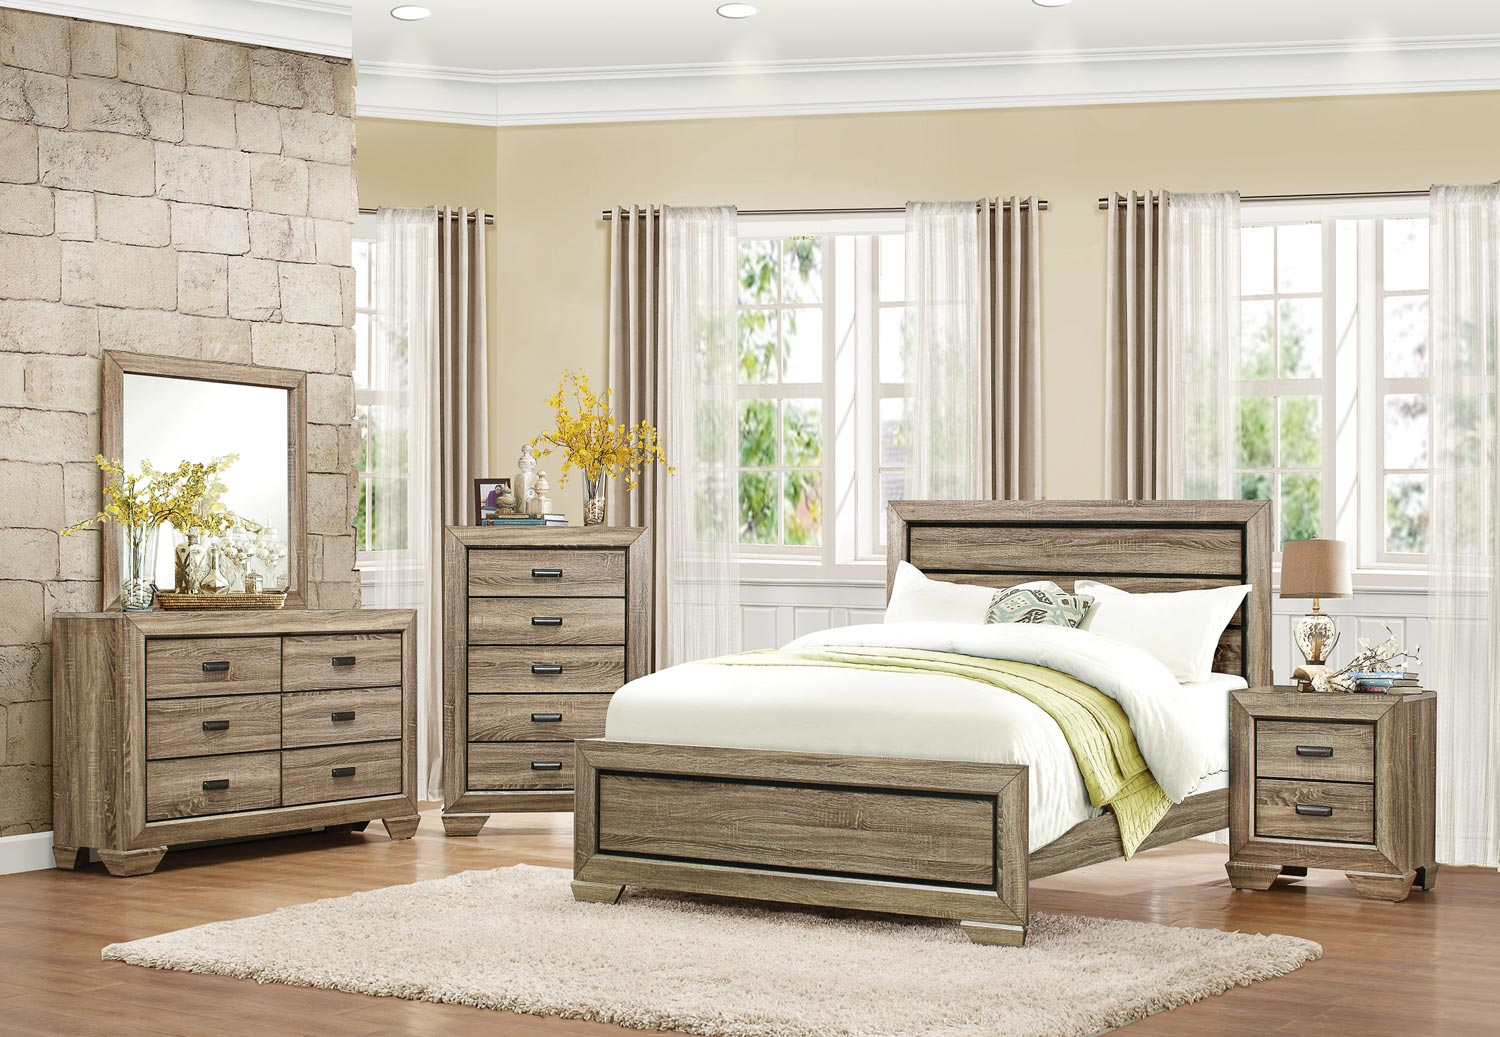 Homelegance Beechnut Panel Bedroom Set - Light Elm